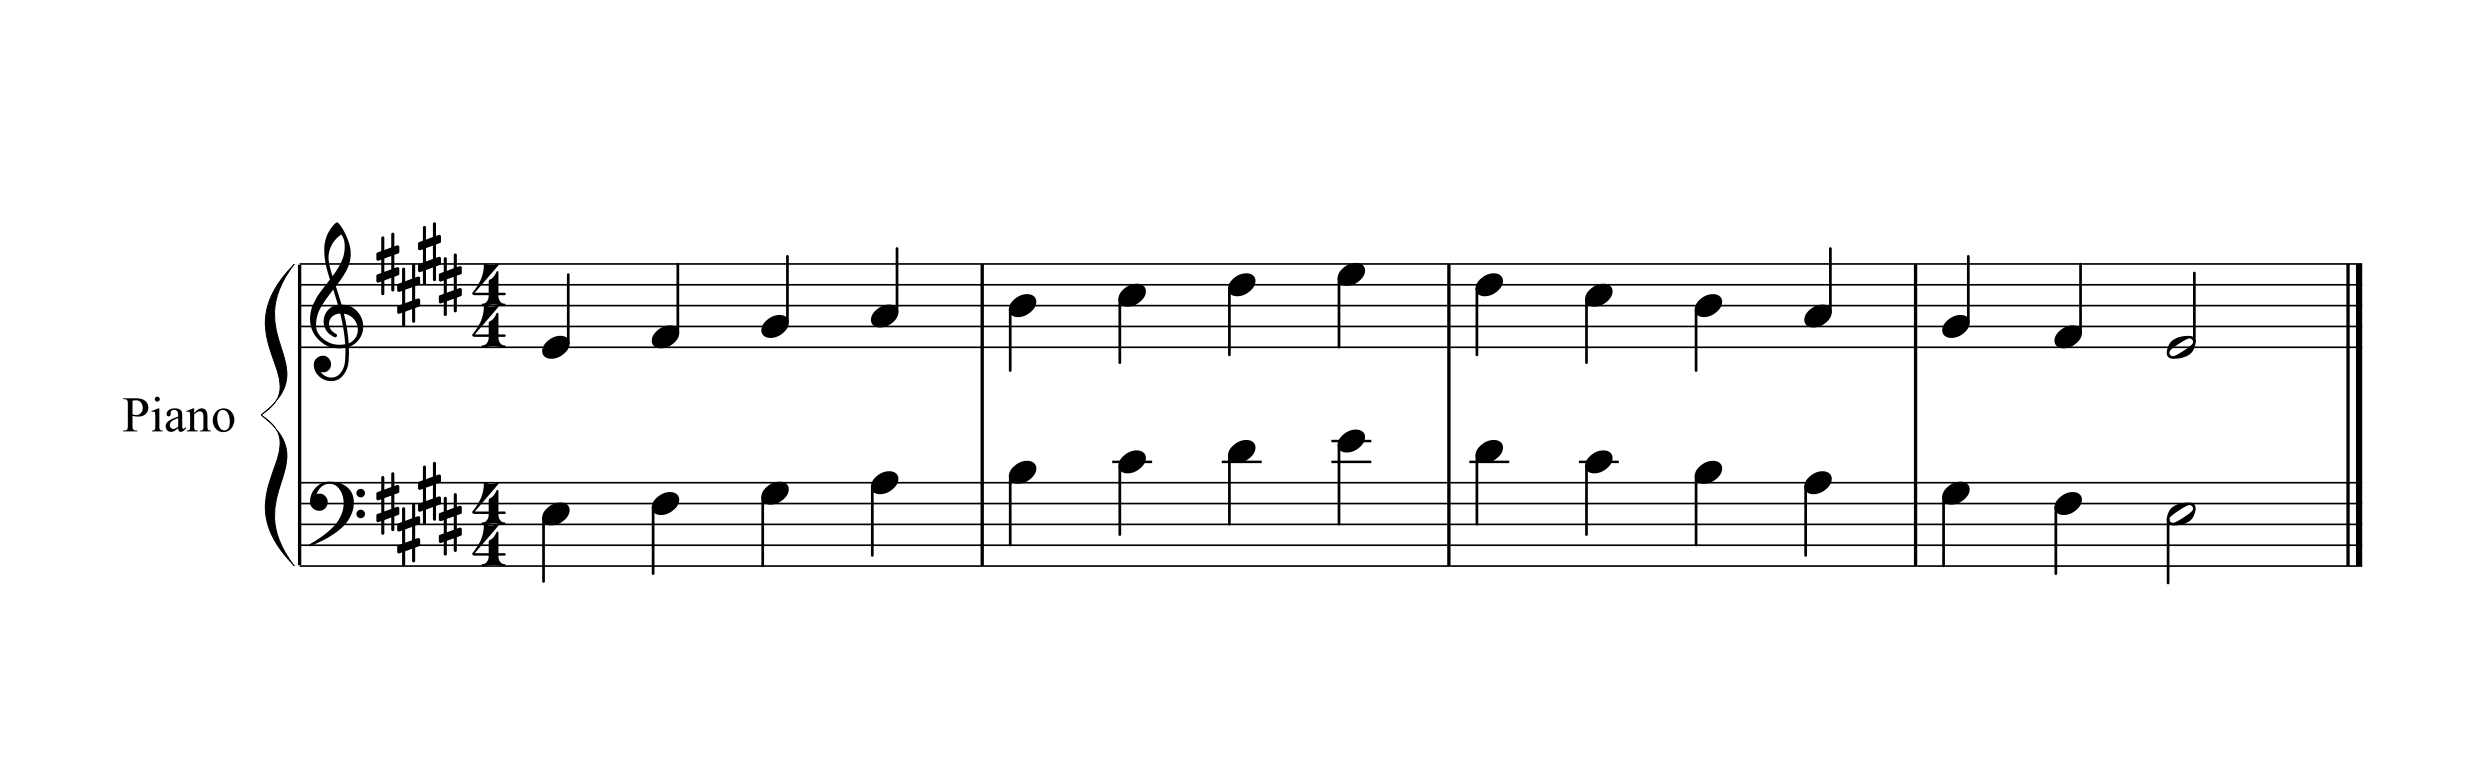 E Major Scale music manuscript